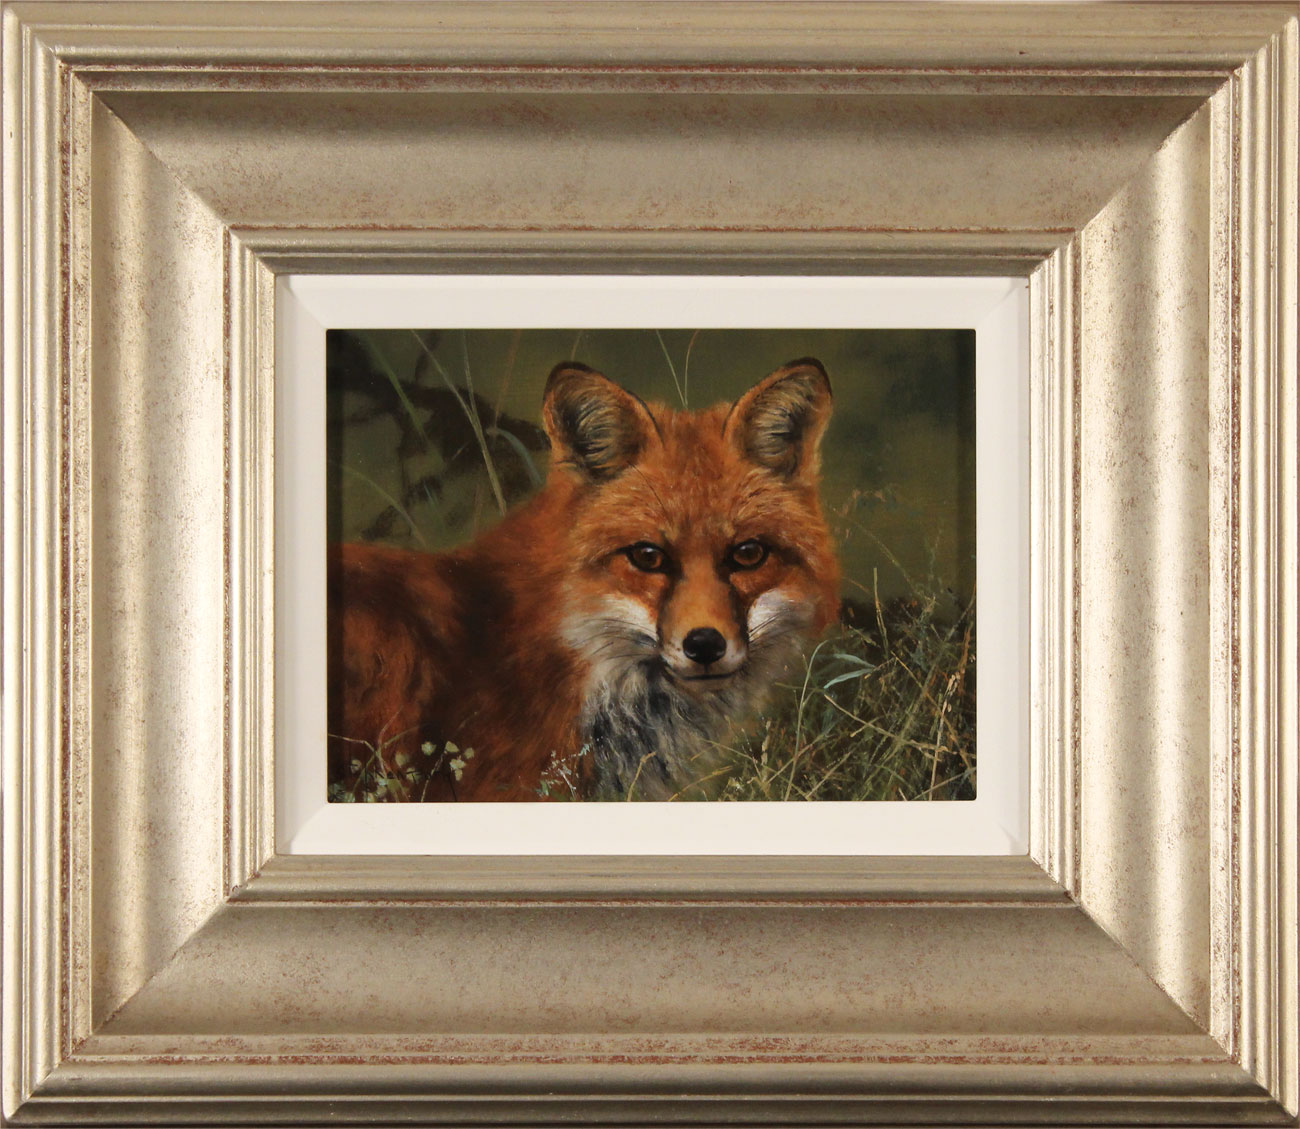 Stephen Park, Original oil painting on panel, Fox. Click to enlarge